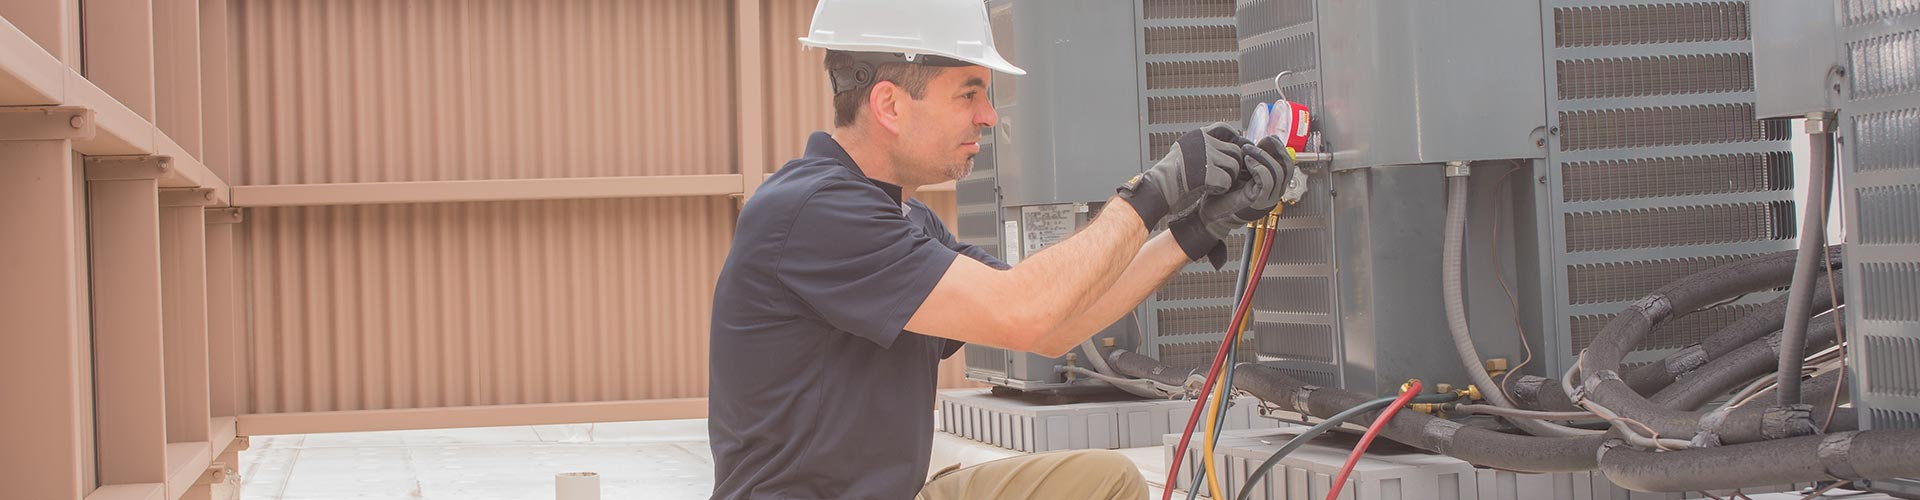 AC Repair and AC Installation in Clayton, Garner, Holly Springs, Raleigh